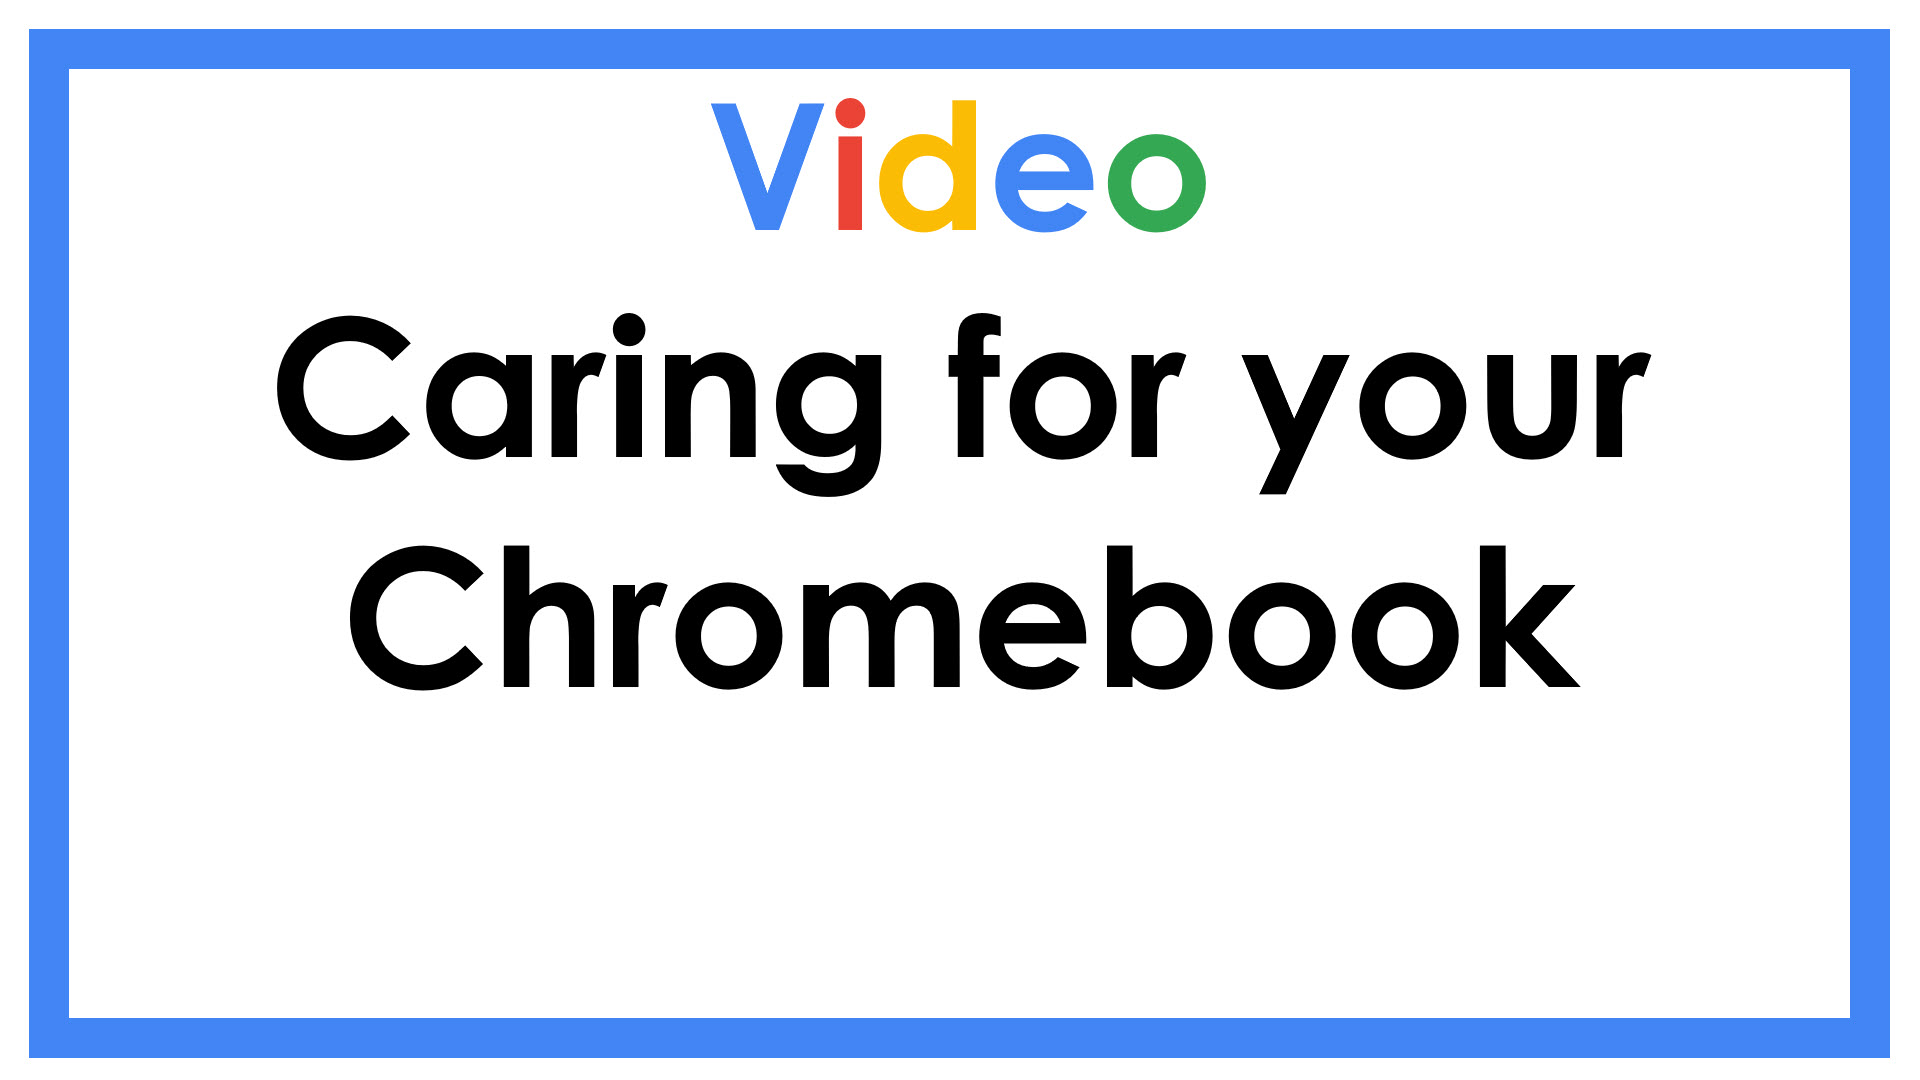 Caring for your Chromebook